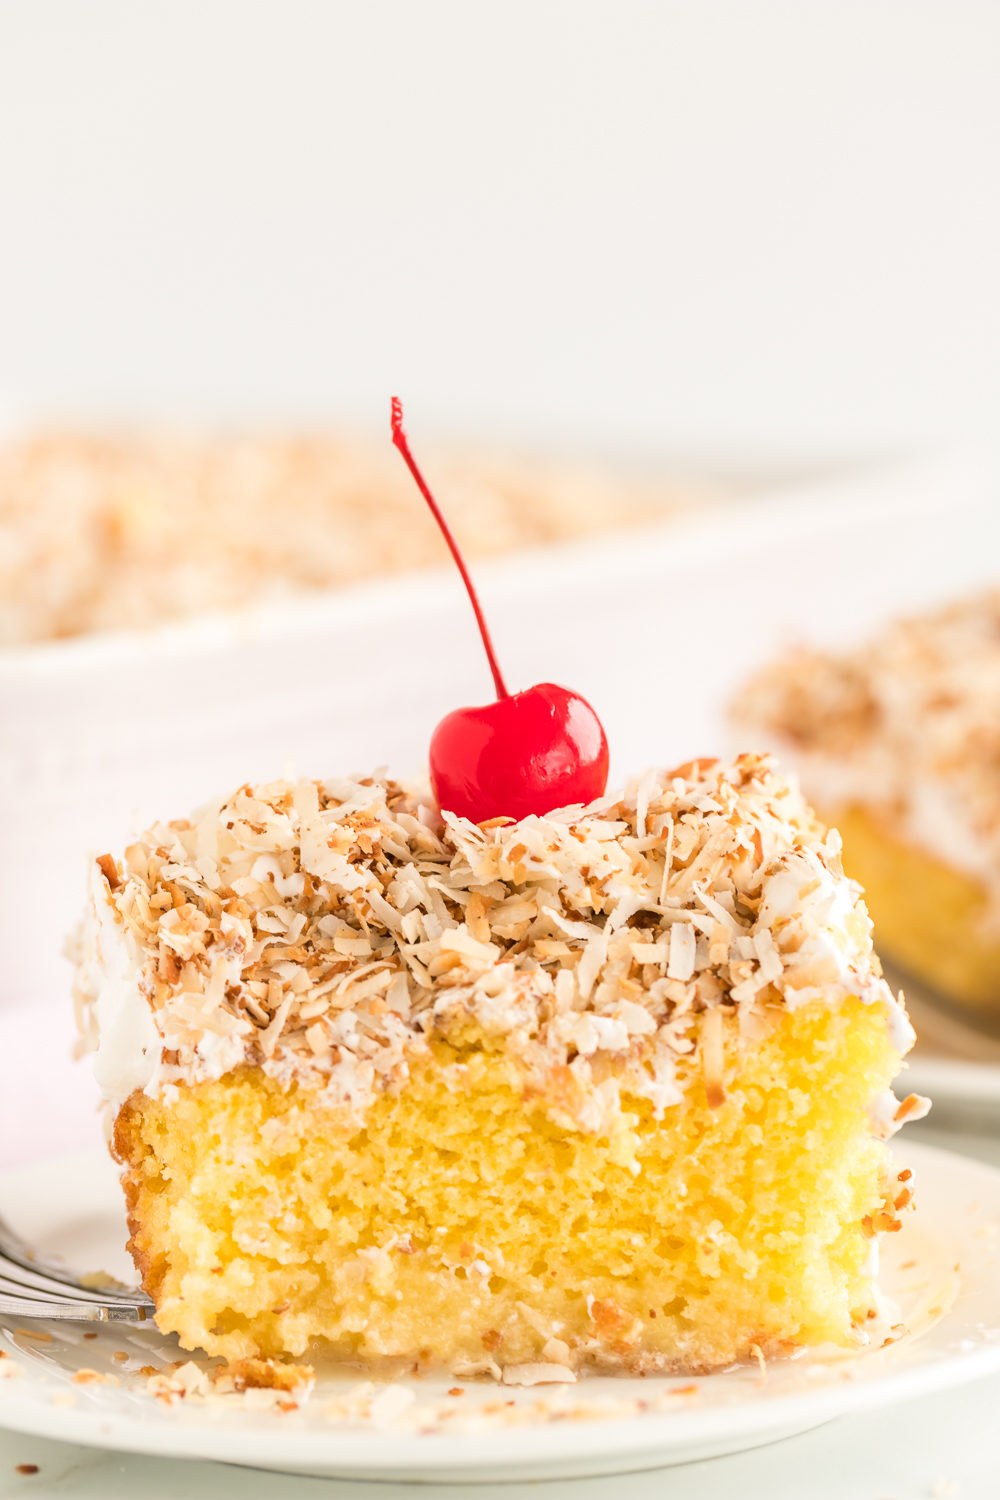 Coconut Cream Poke Cake: a delicious coconut cream poke cake filled with a coconut cream filling and topped with toasted coconut. It's a delicious creamy and flavorful cake perfect for a crowd.